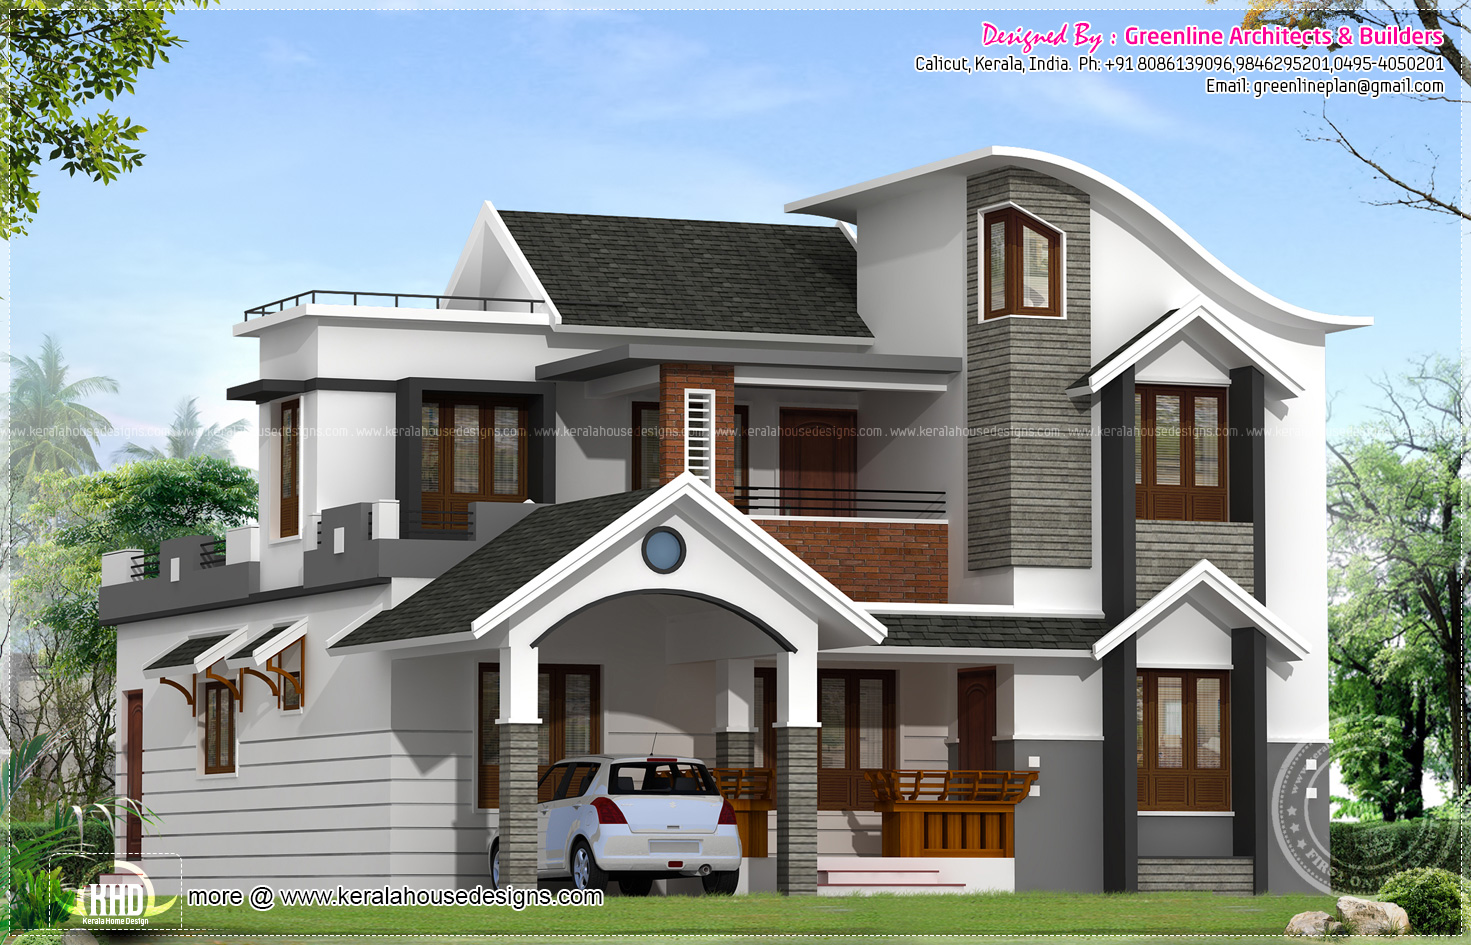 Modern house architecture in kerala kerala home design for Green modern home designs